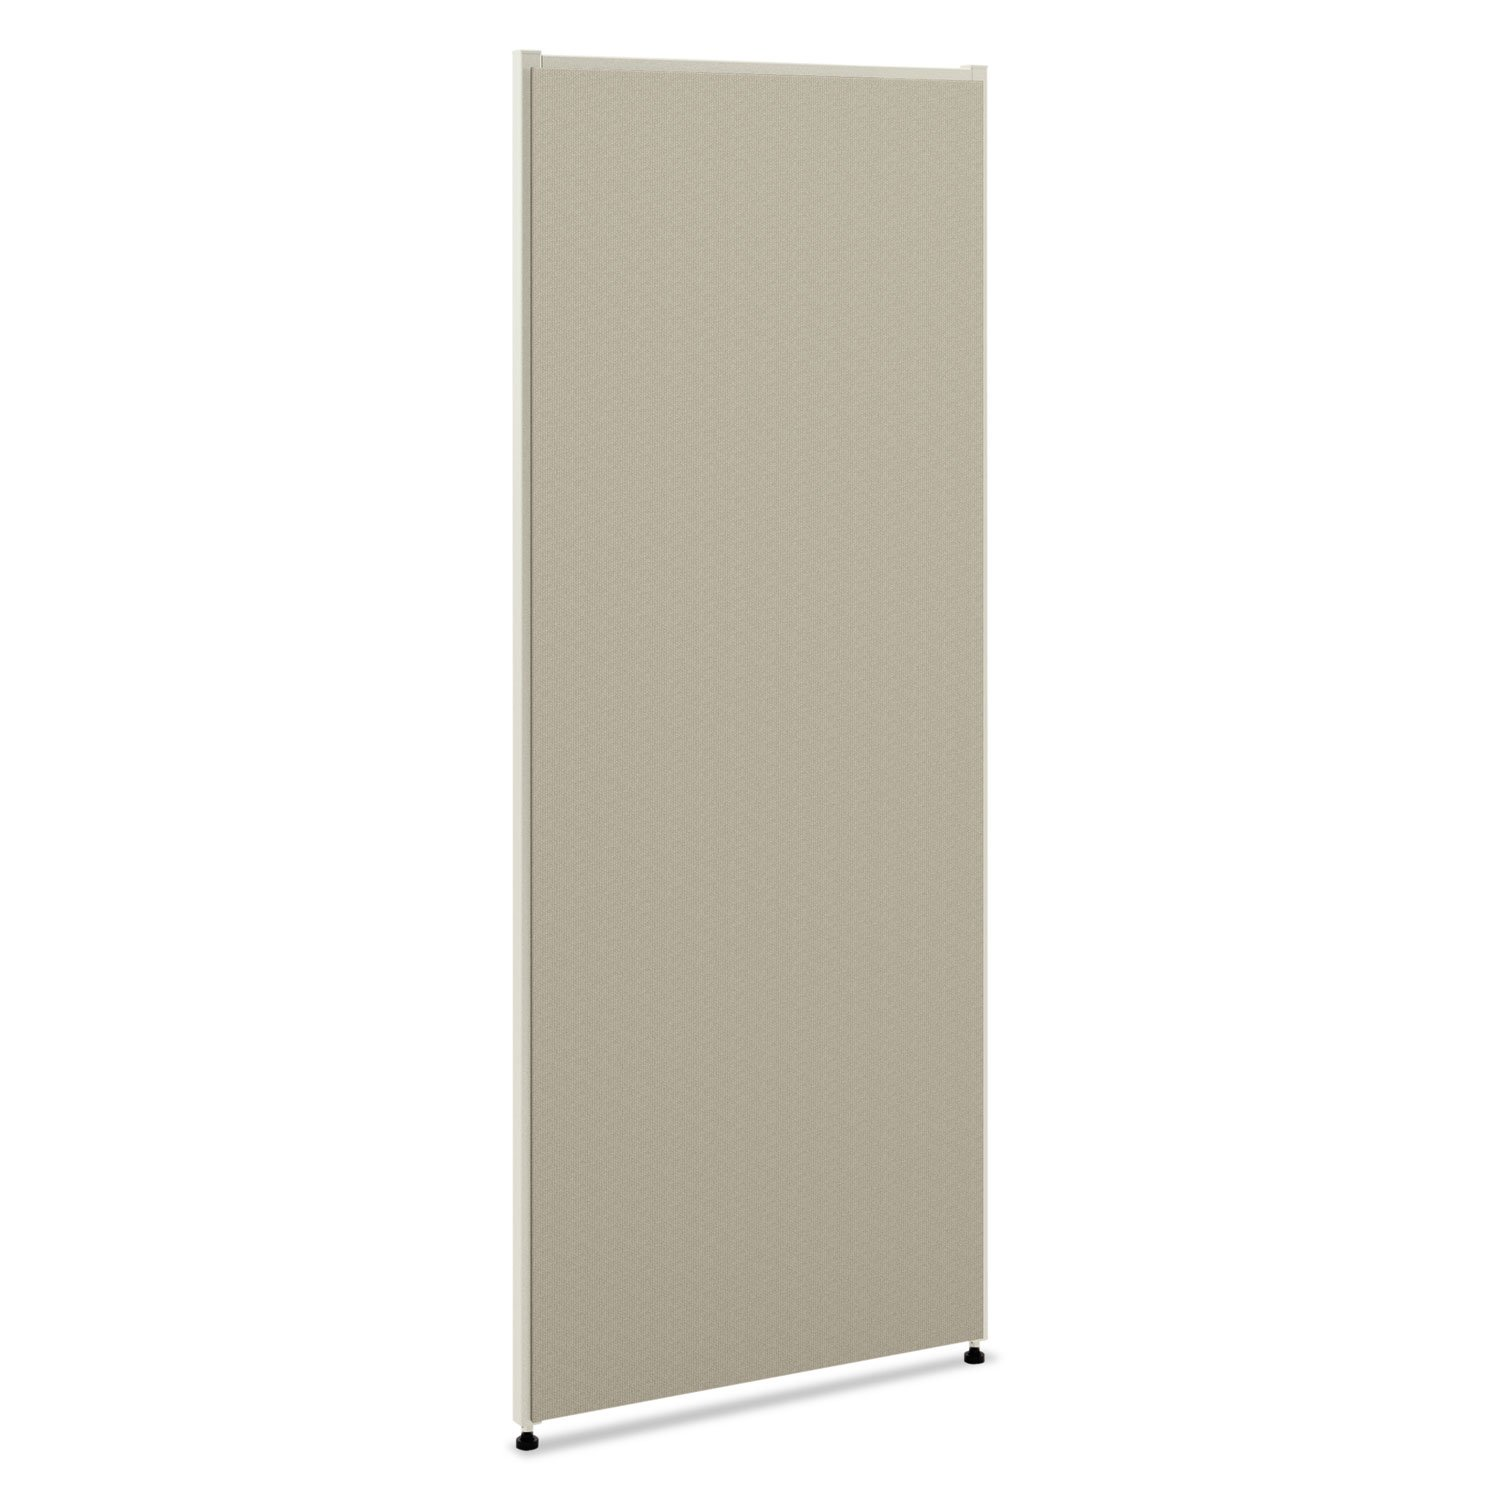 BSXP6060GYGY - Basyx by HON Verse P6060 Office Panel System